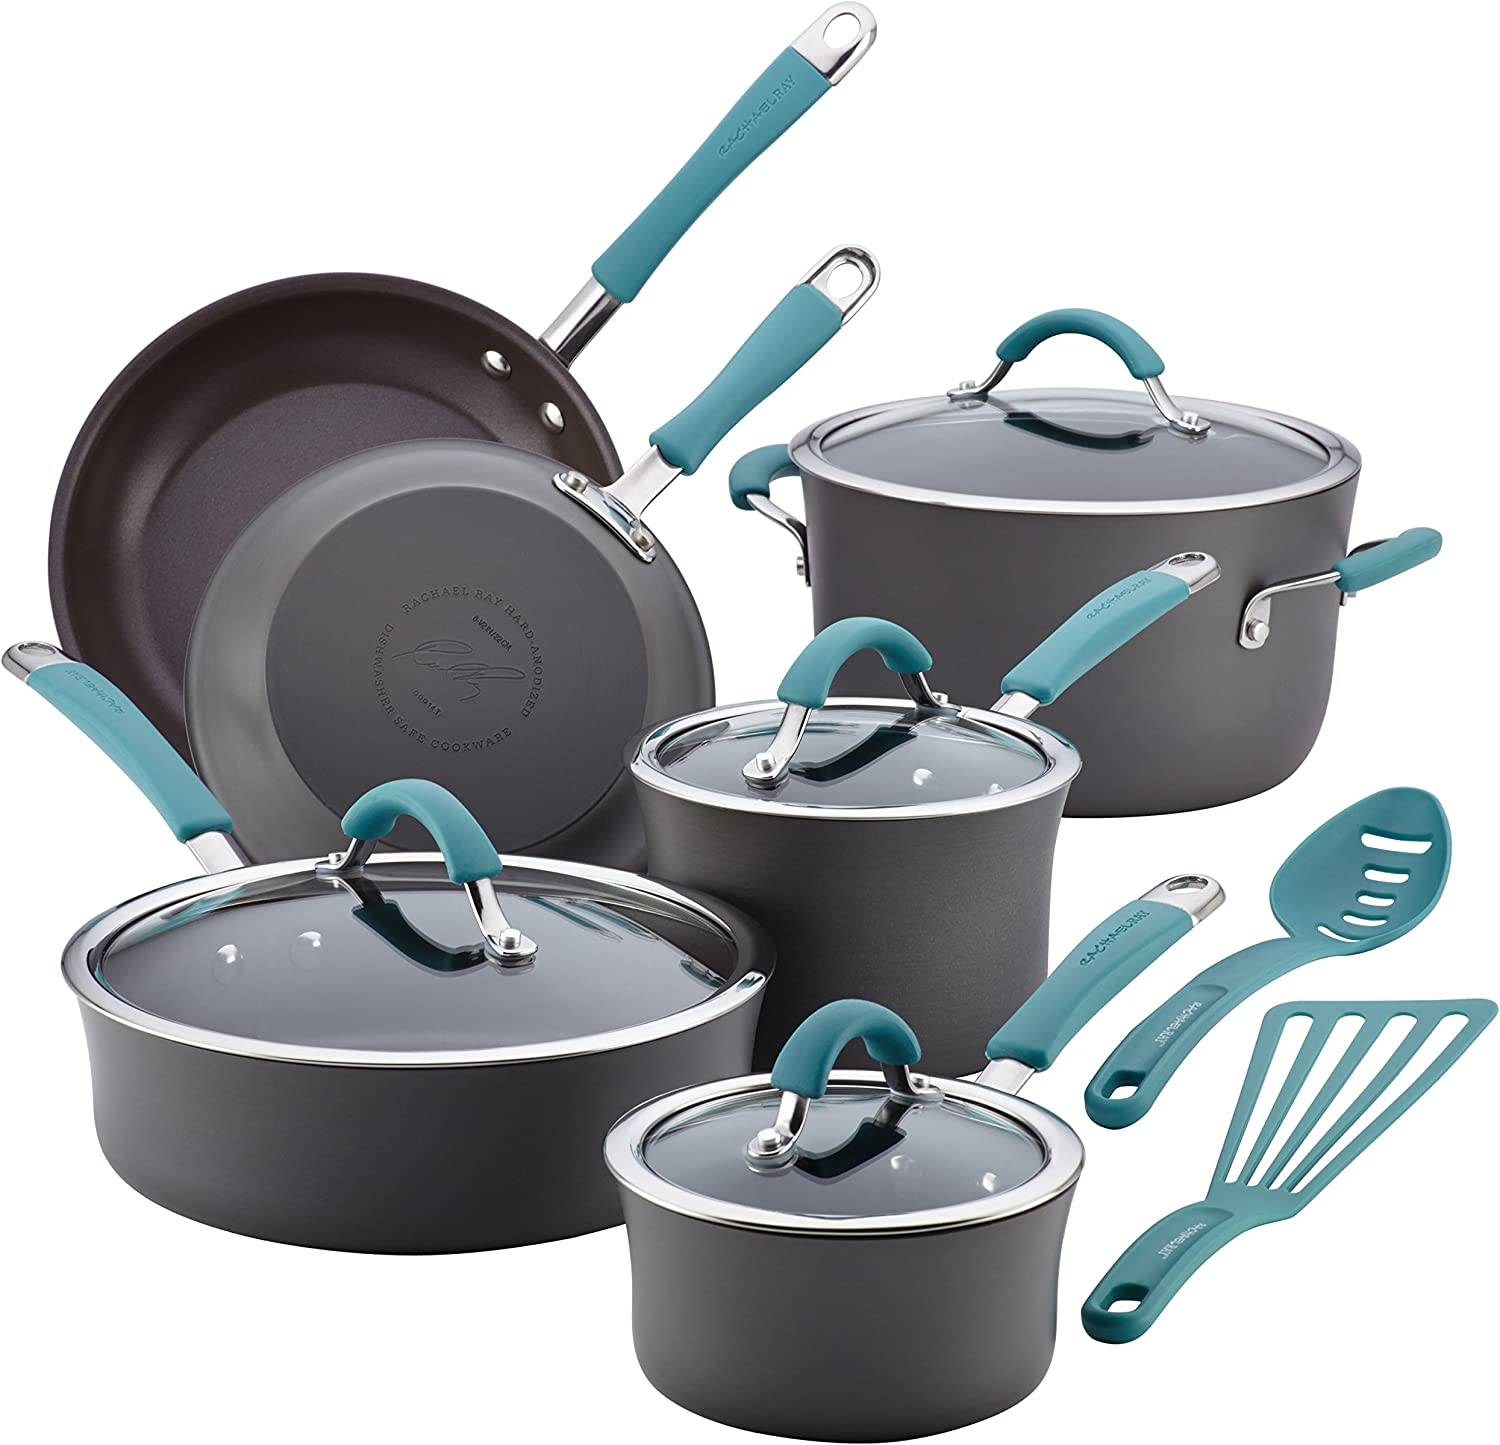 Rachael Ray Cucina 12-piece Hard Anodized Nonstick Cookware Set